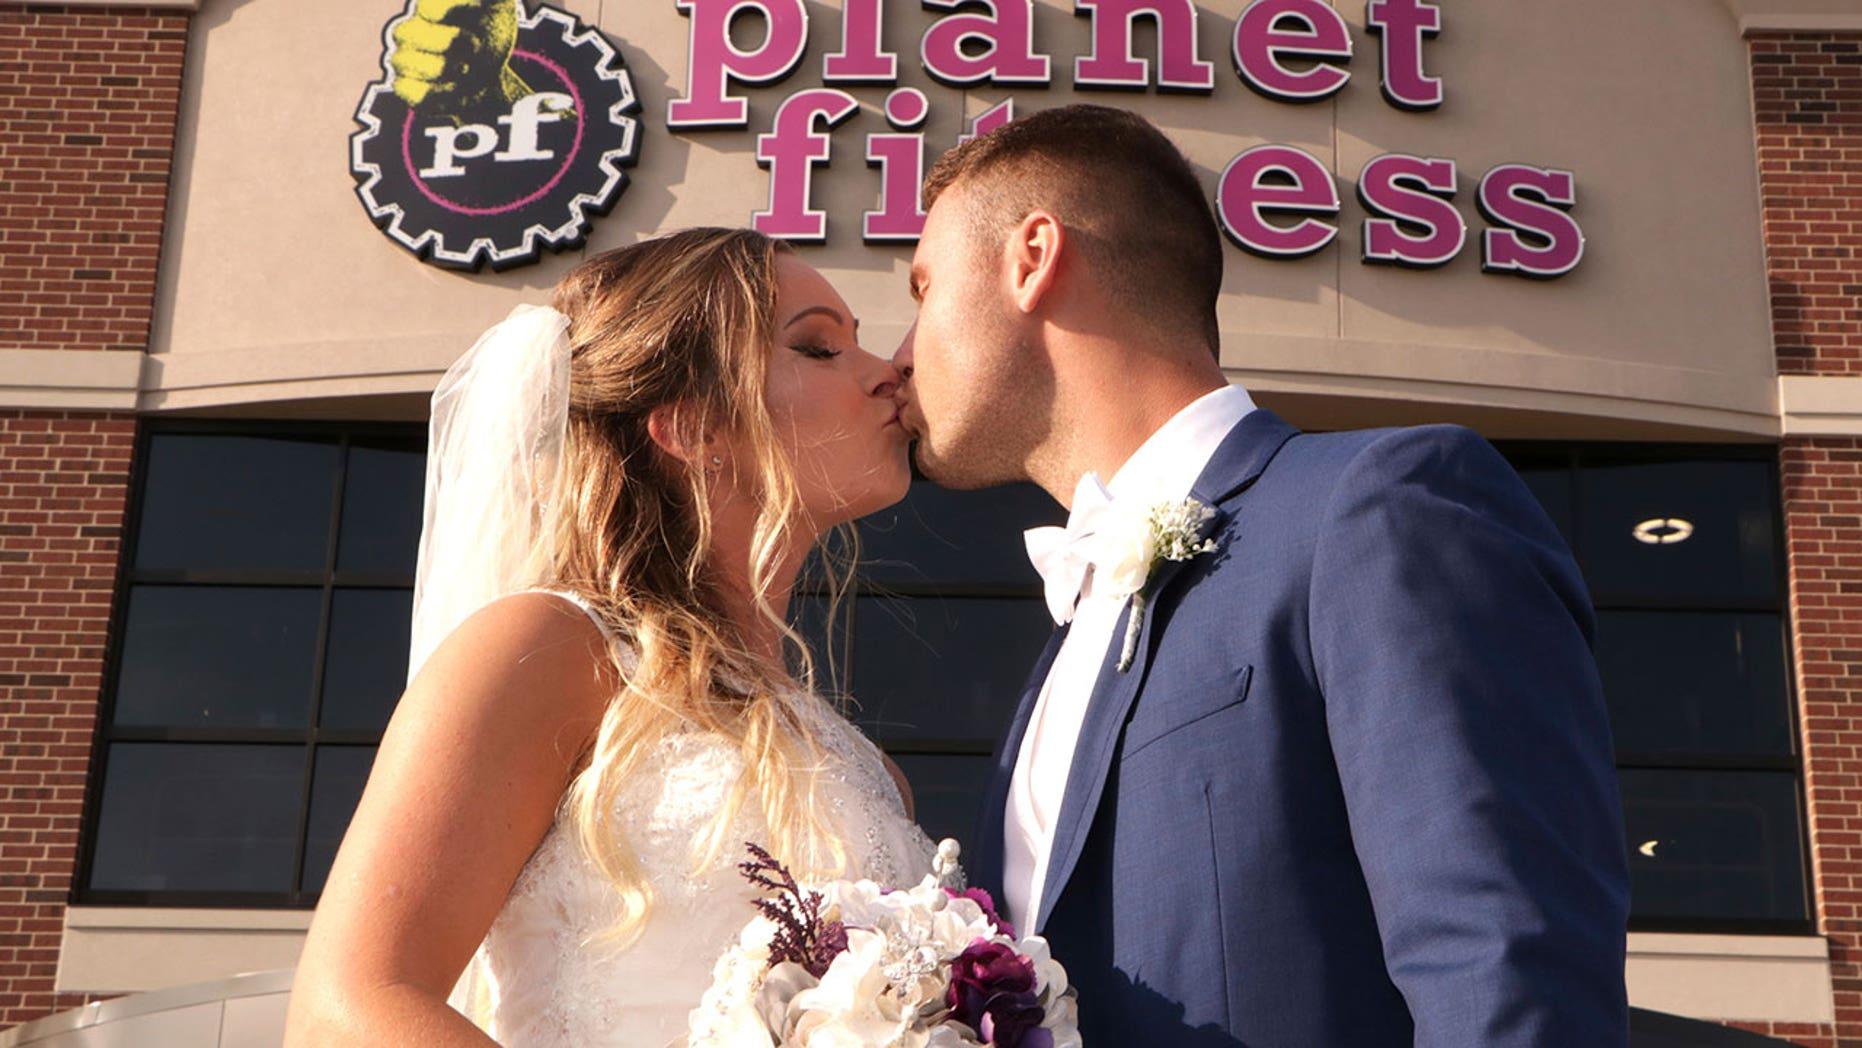 Stephanie Hughes and Joe Keith decided to get married at the Planet Fitness where they fell in love.